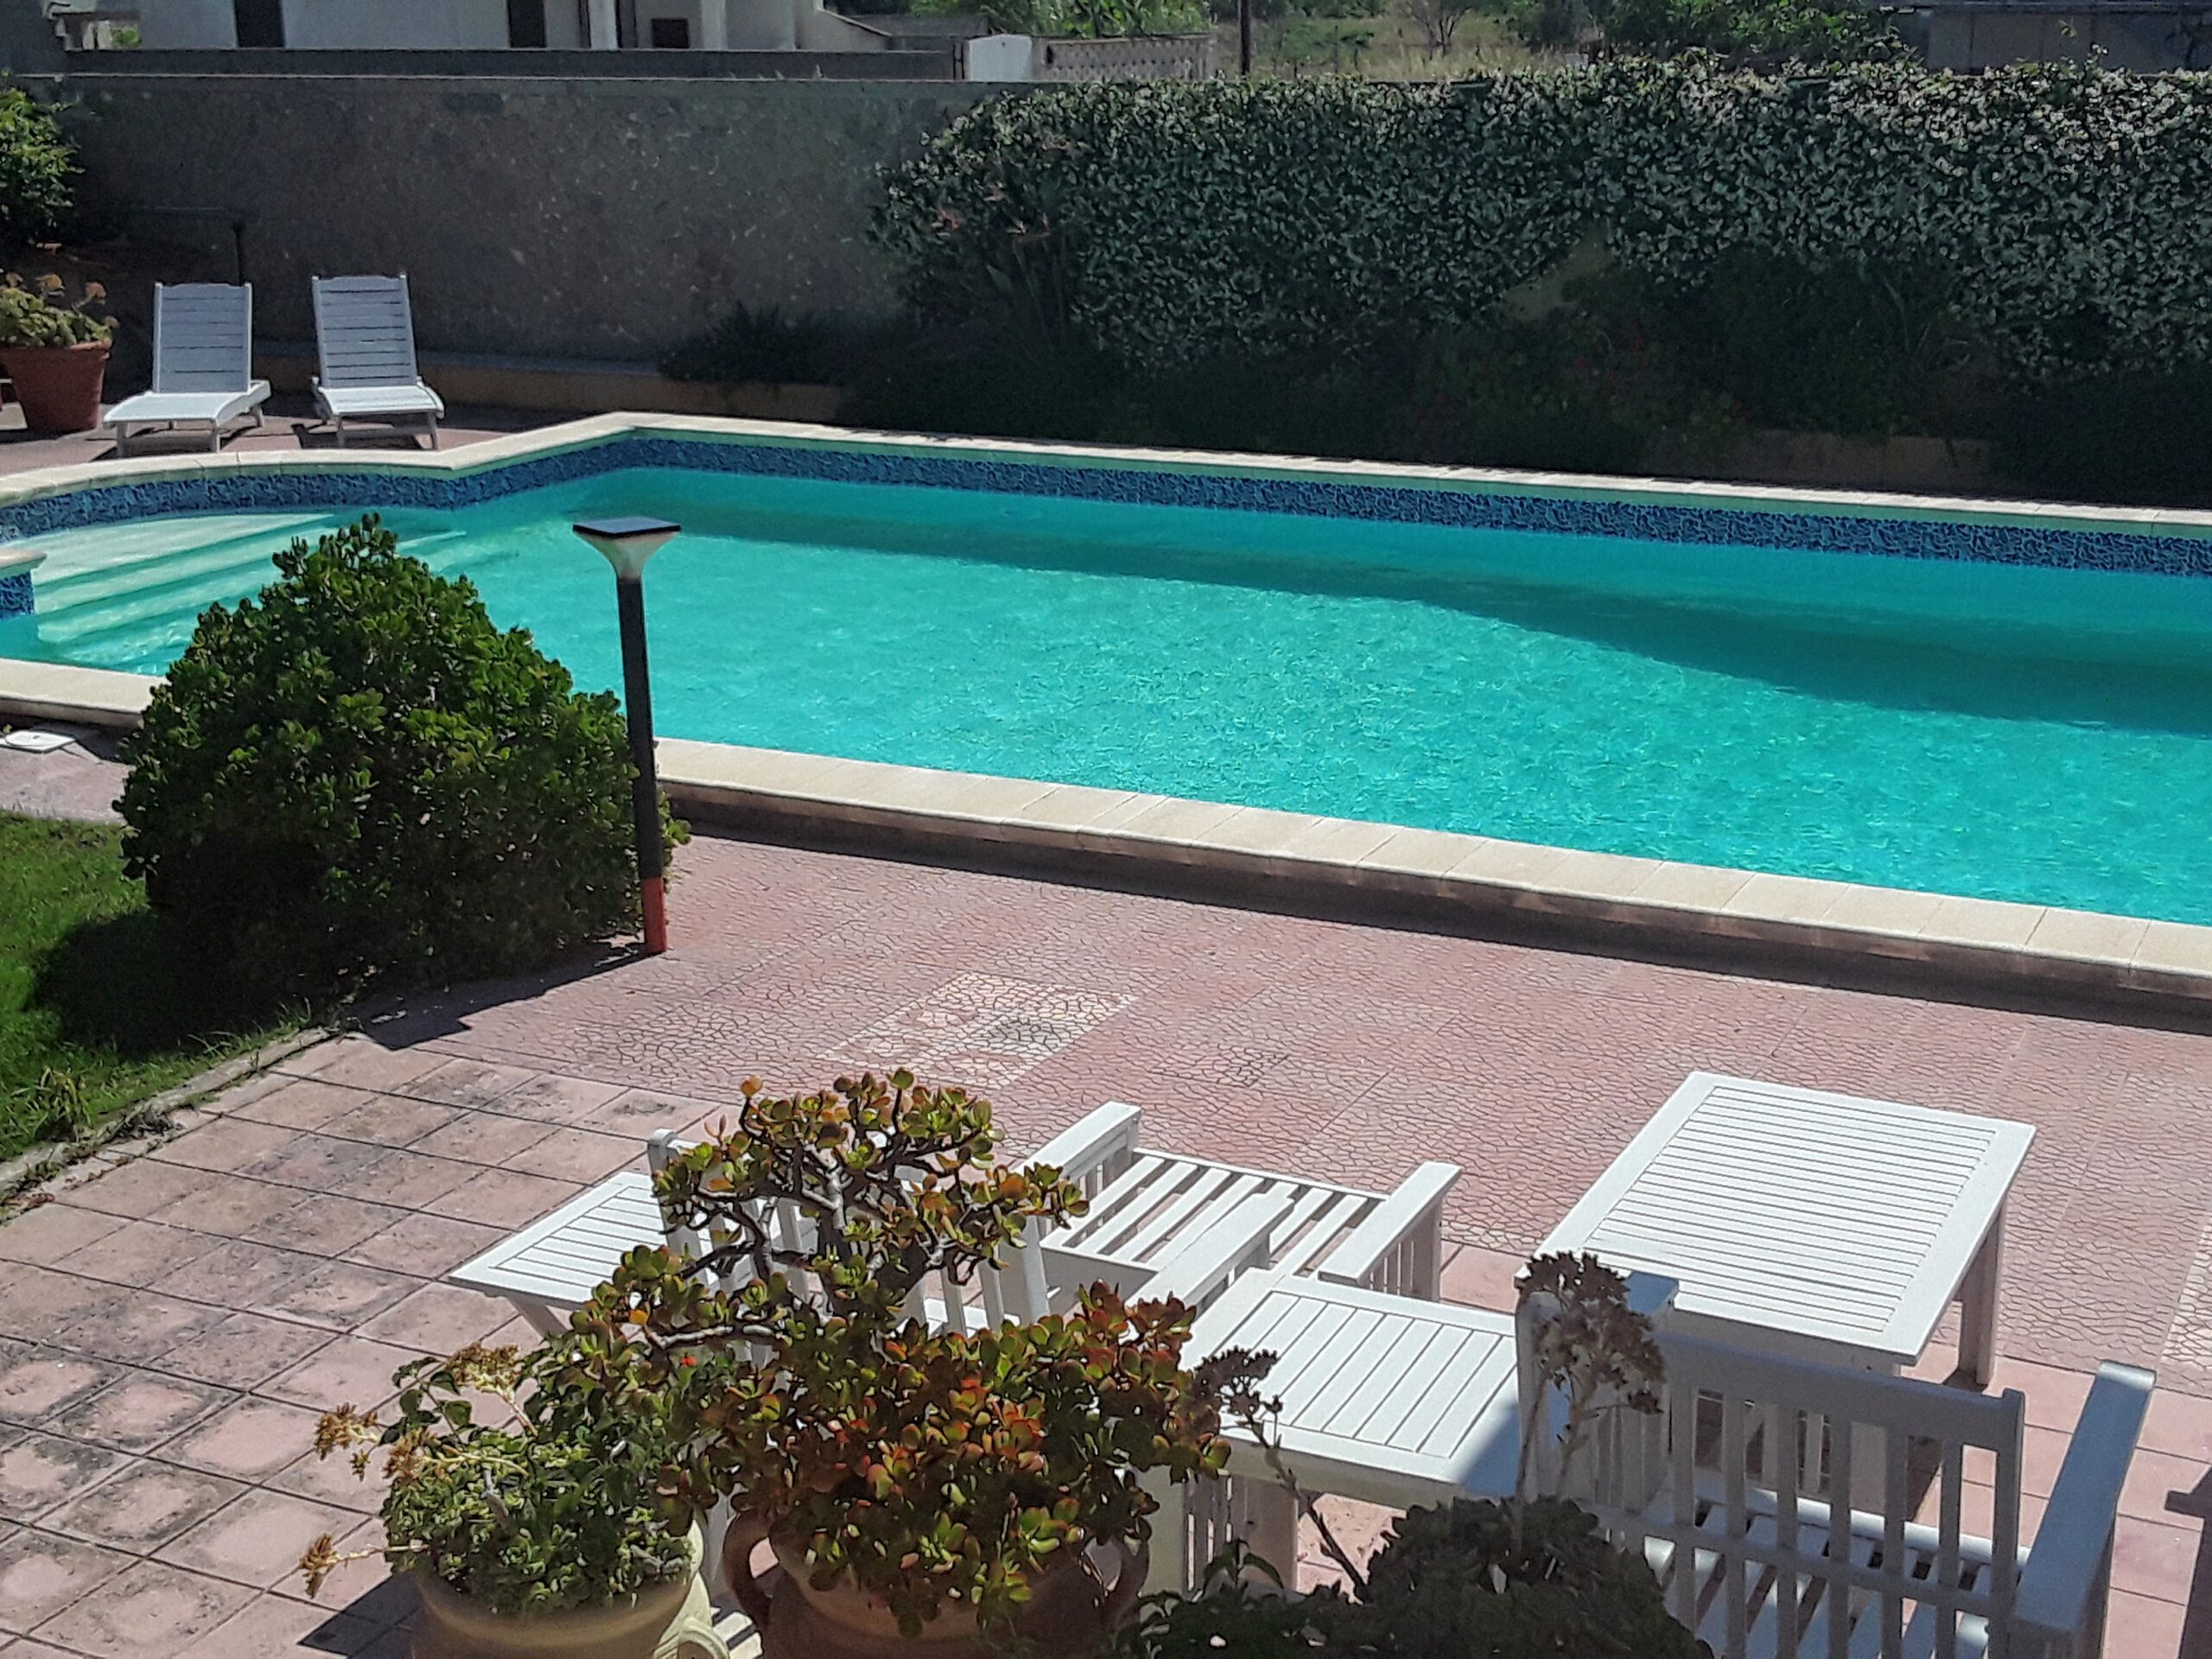 Amazing 3 bedroom Puglia Holiday Villla with private, heated, pool on the Adriatic Coast